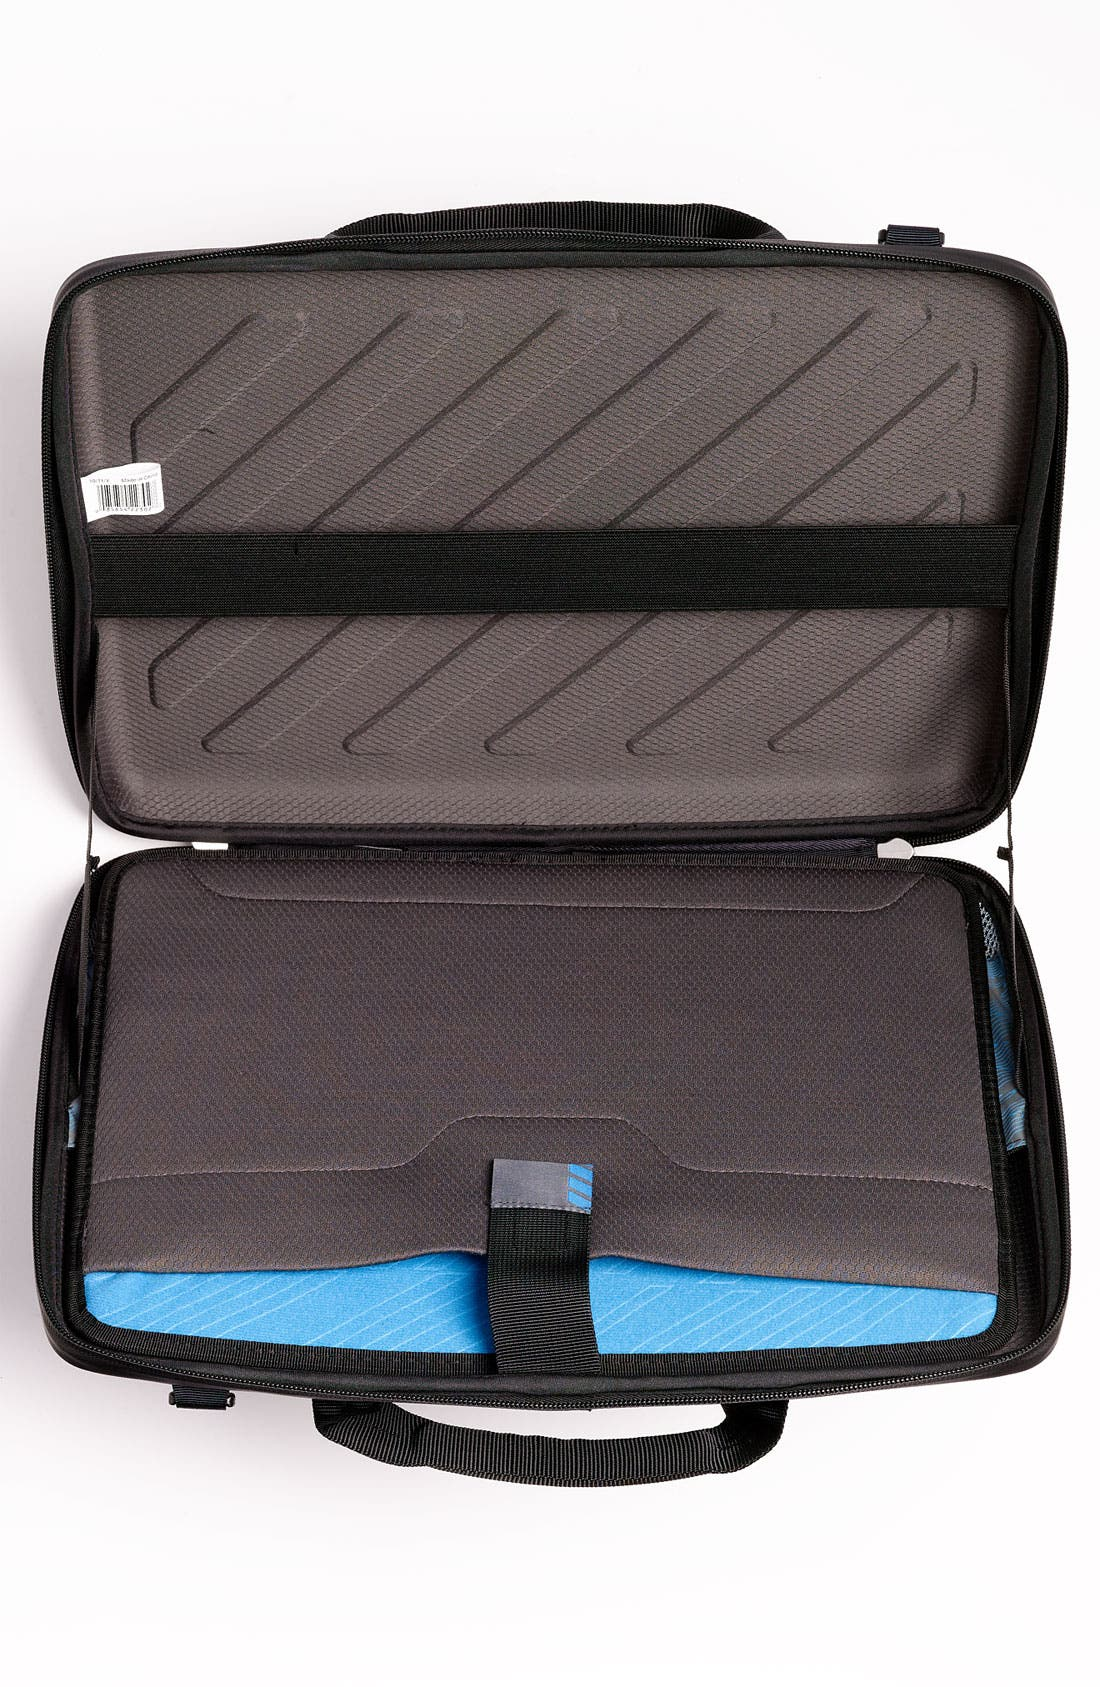 Alternate Image 3  - Thule 13 Inch MacBook Pro Laptop Attaché Case